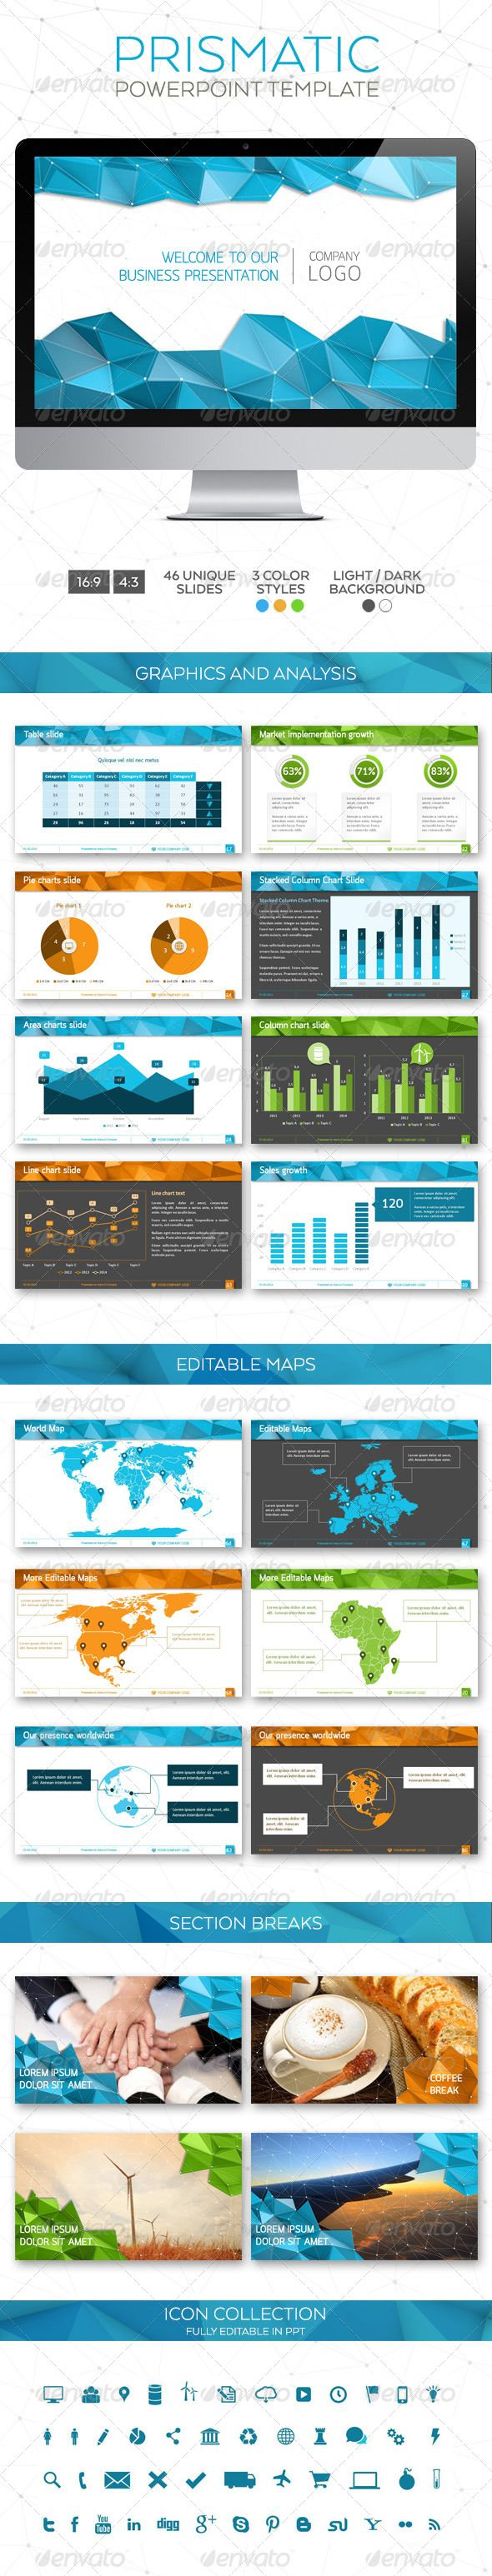 Prismatic Powerpoint Template (Powerpoint Templates) #Powerpoint #Powerpoint_Template #Presentation